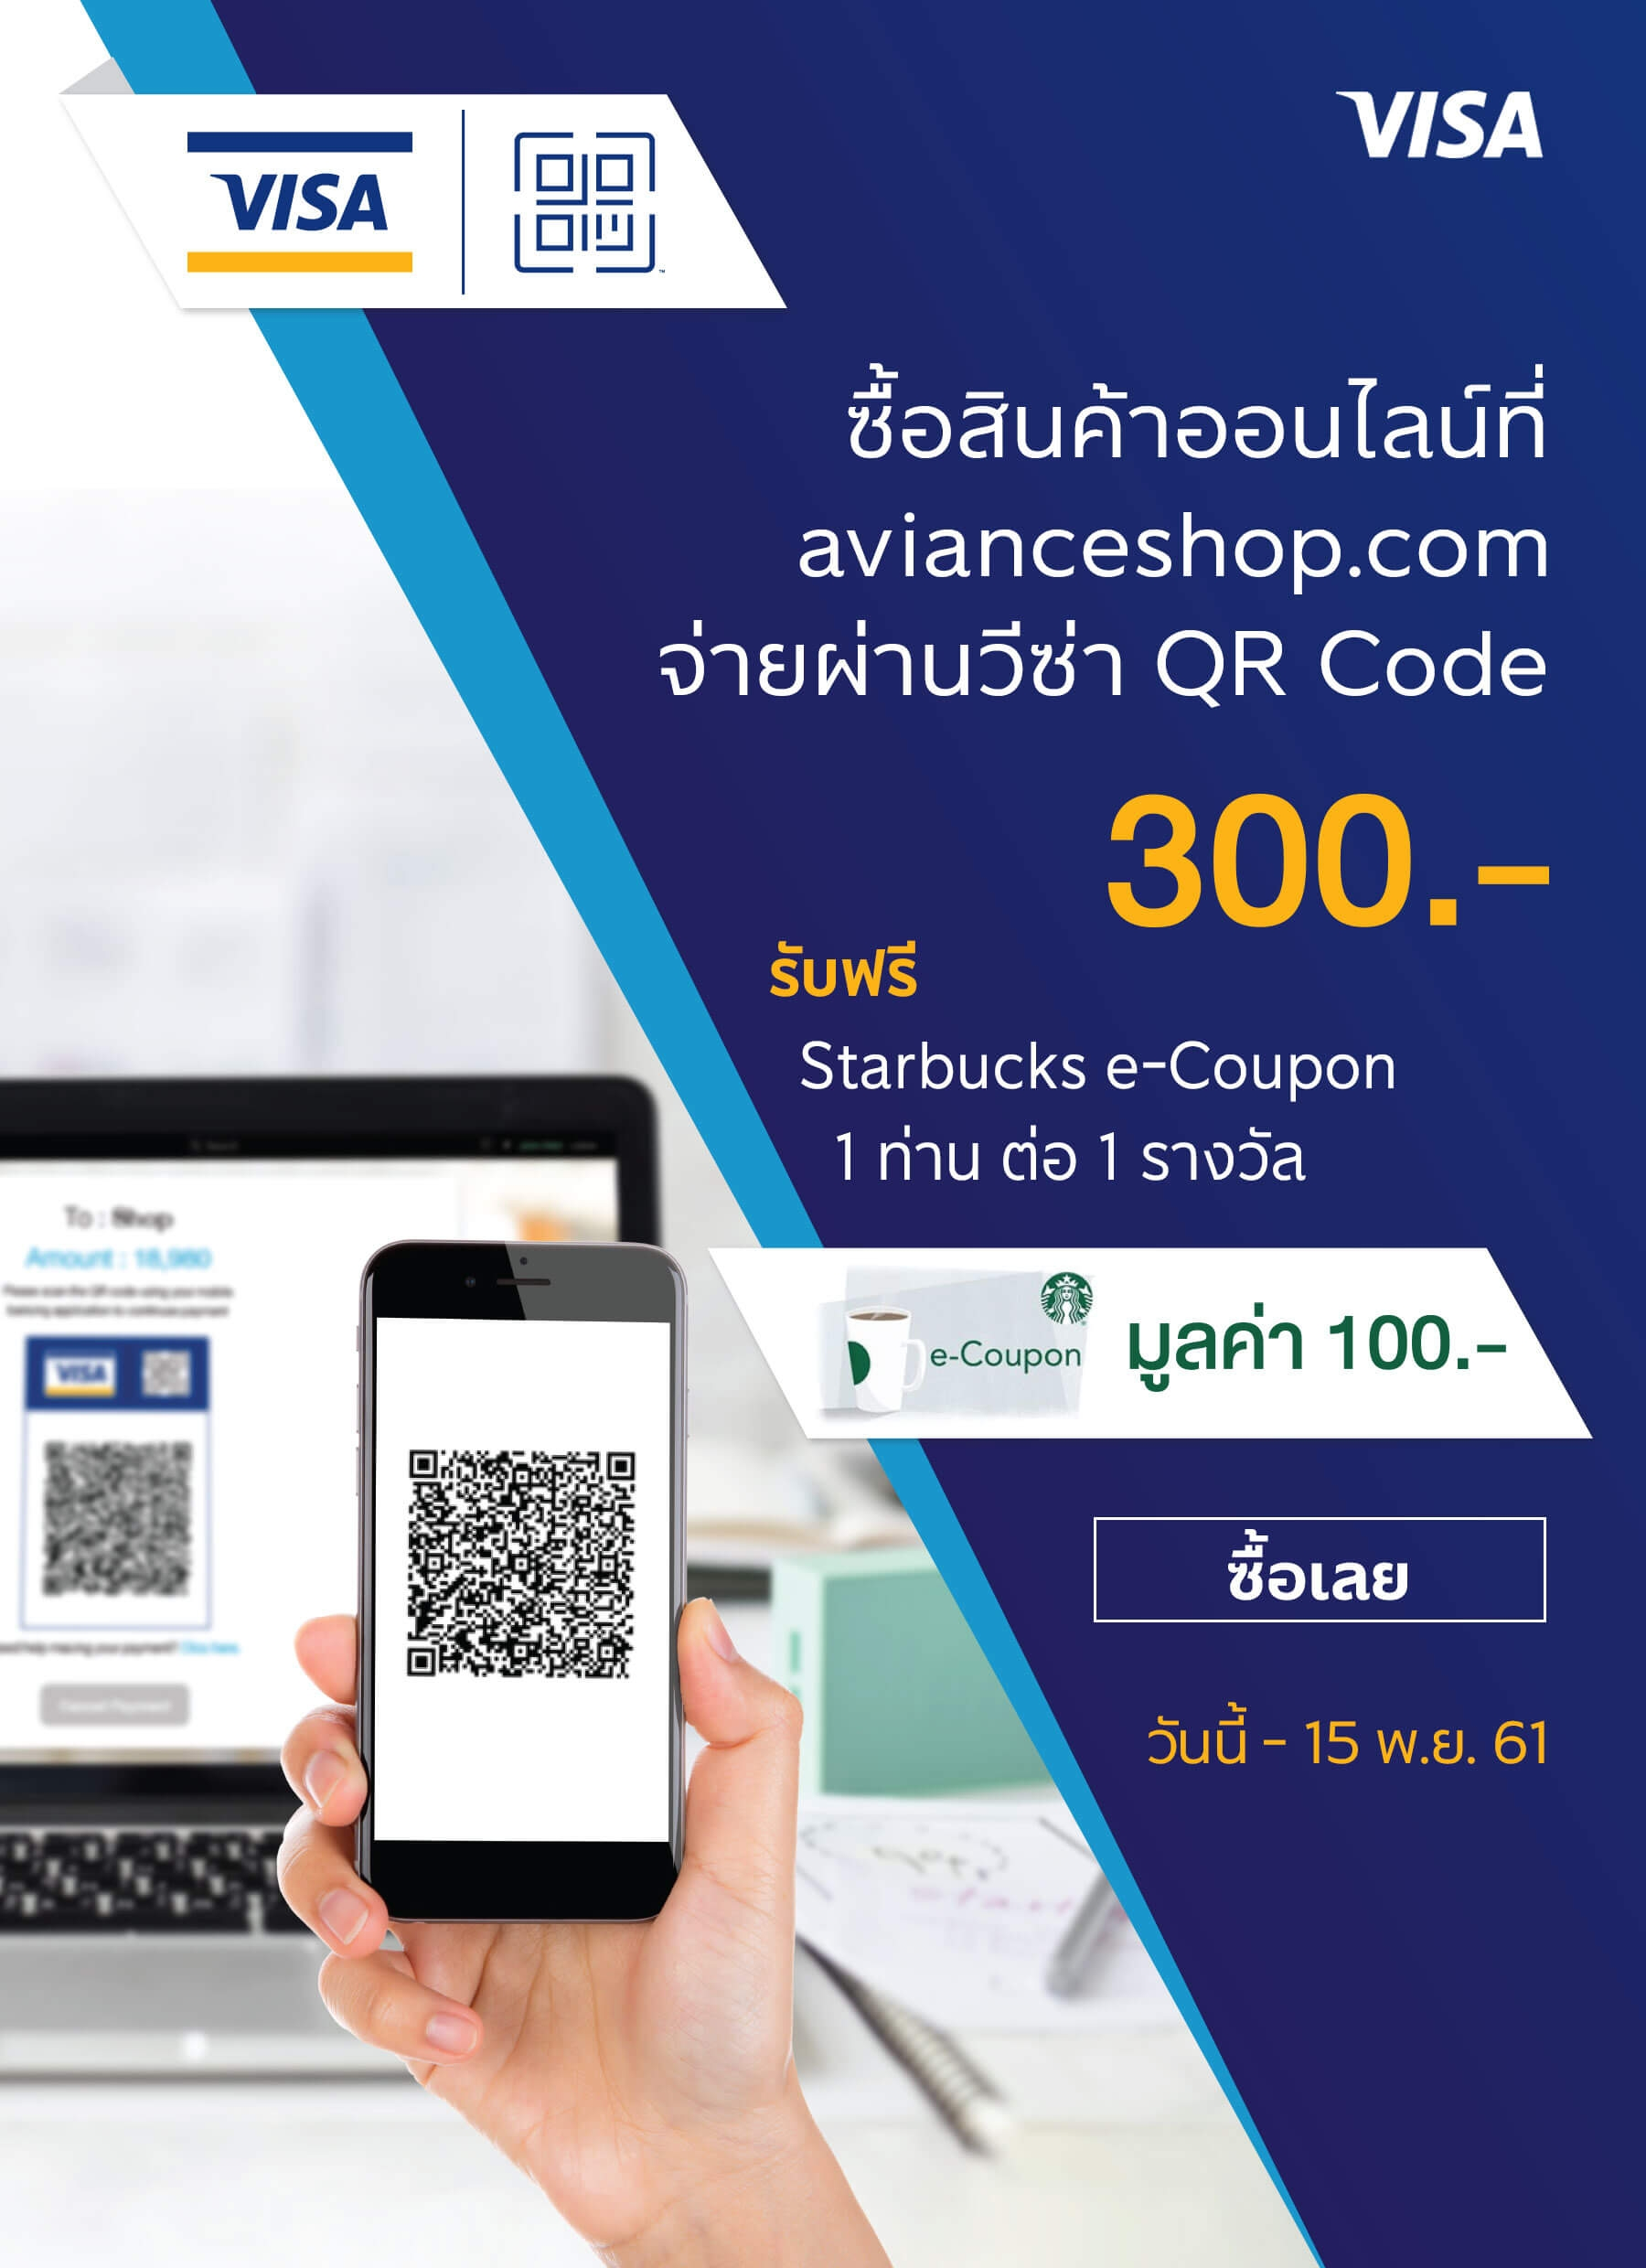 Get free Starbucks gift card by using VISA QR-code now